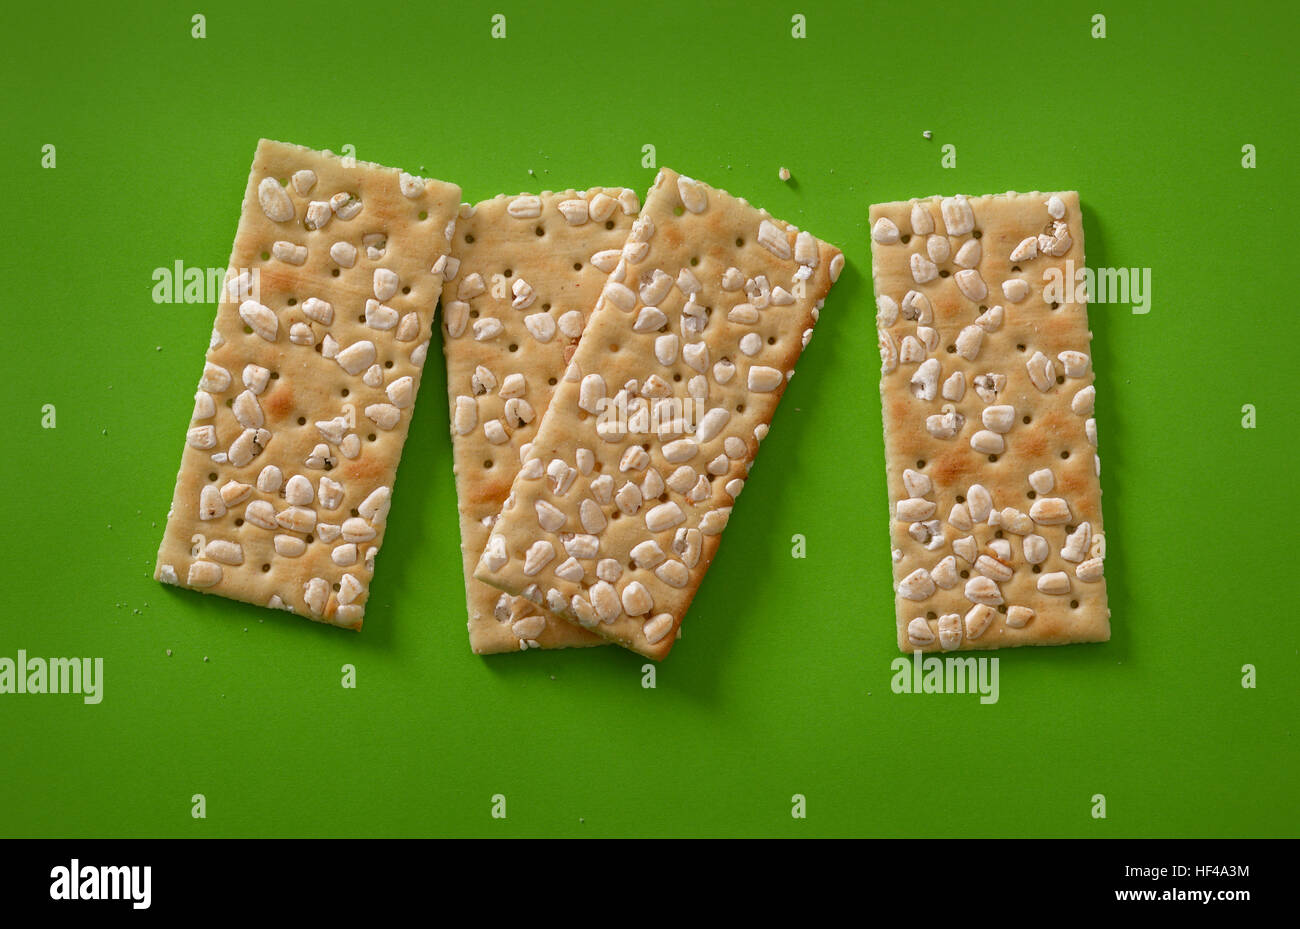 savory biscuits rice on the green table - Stock Image